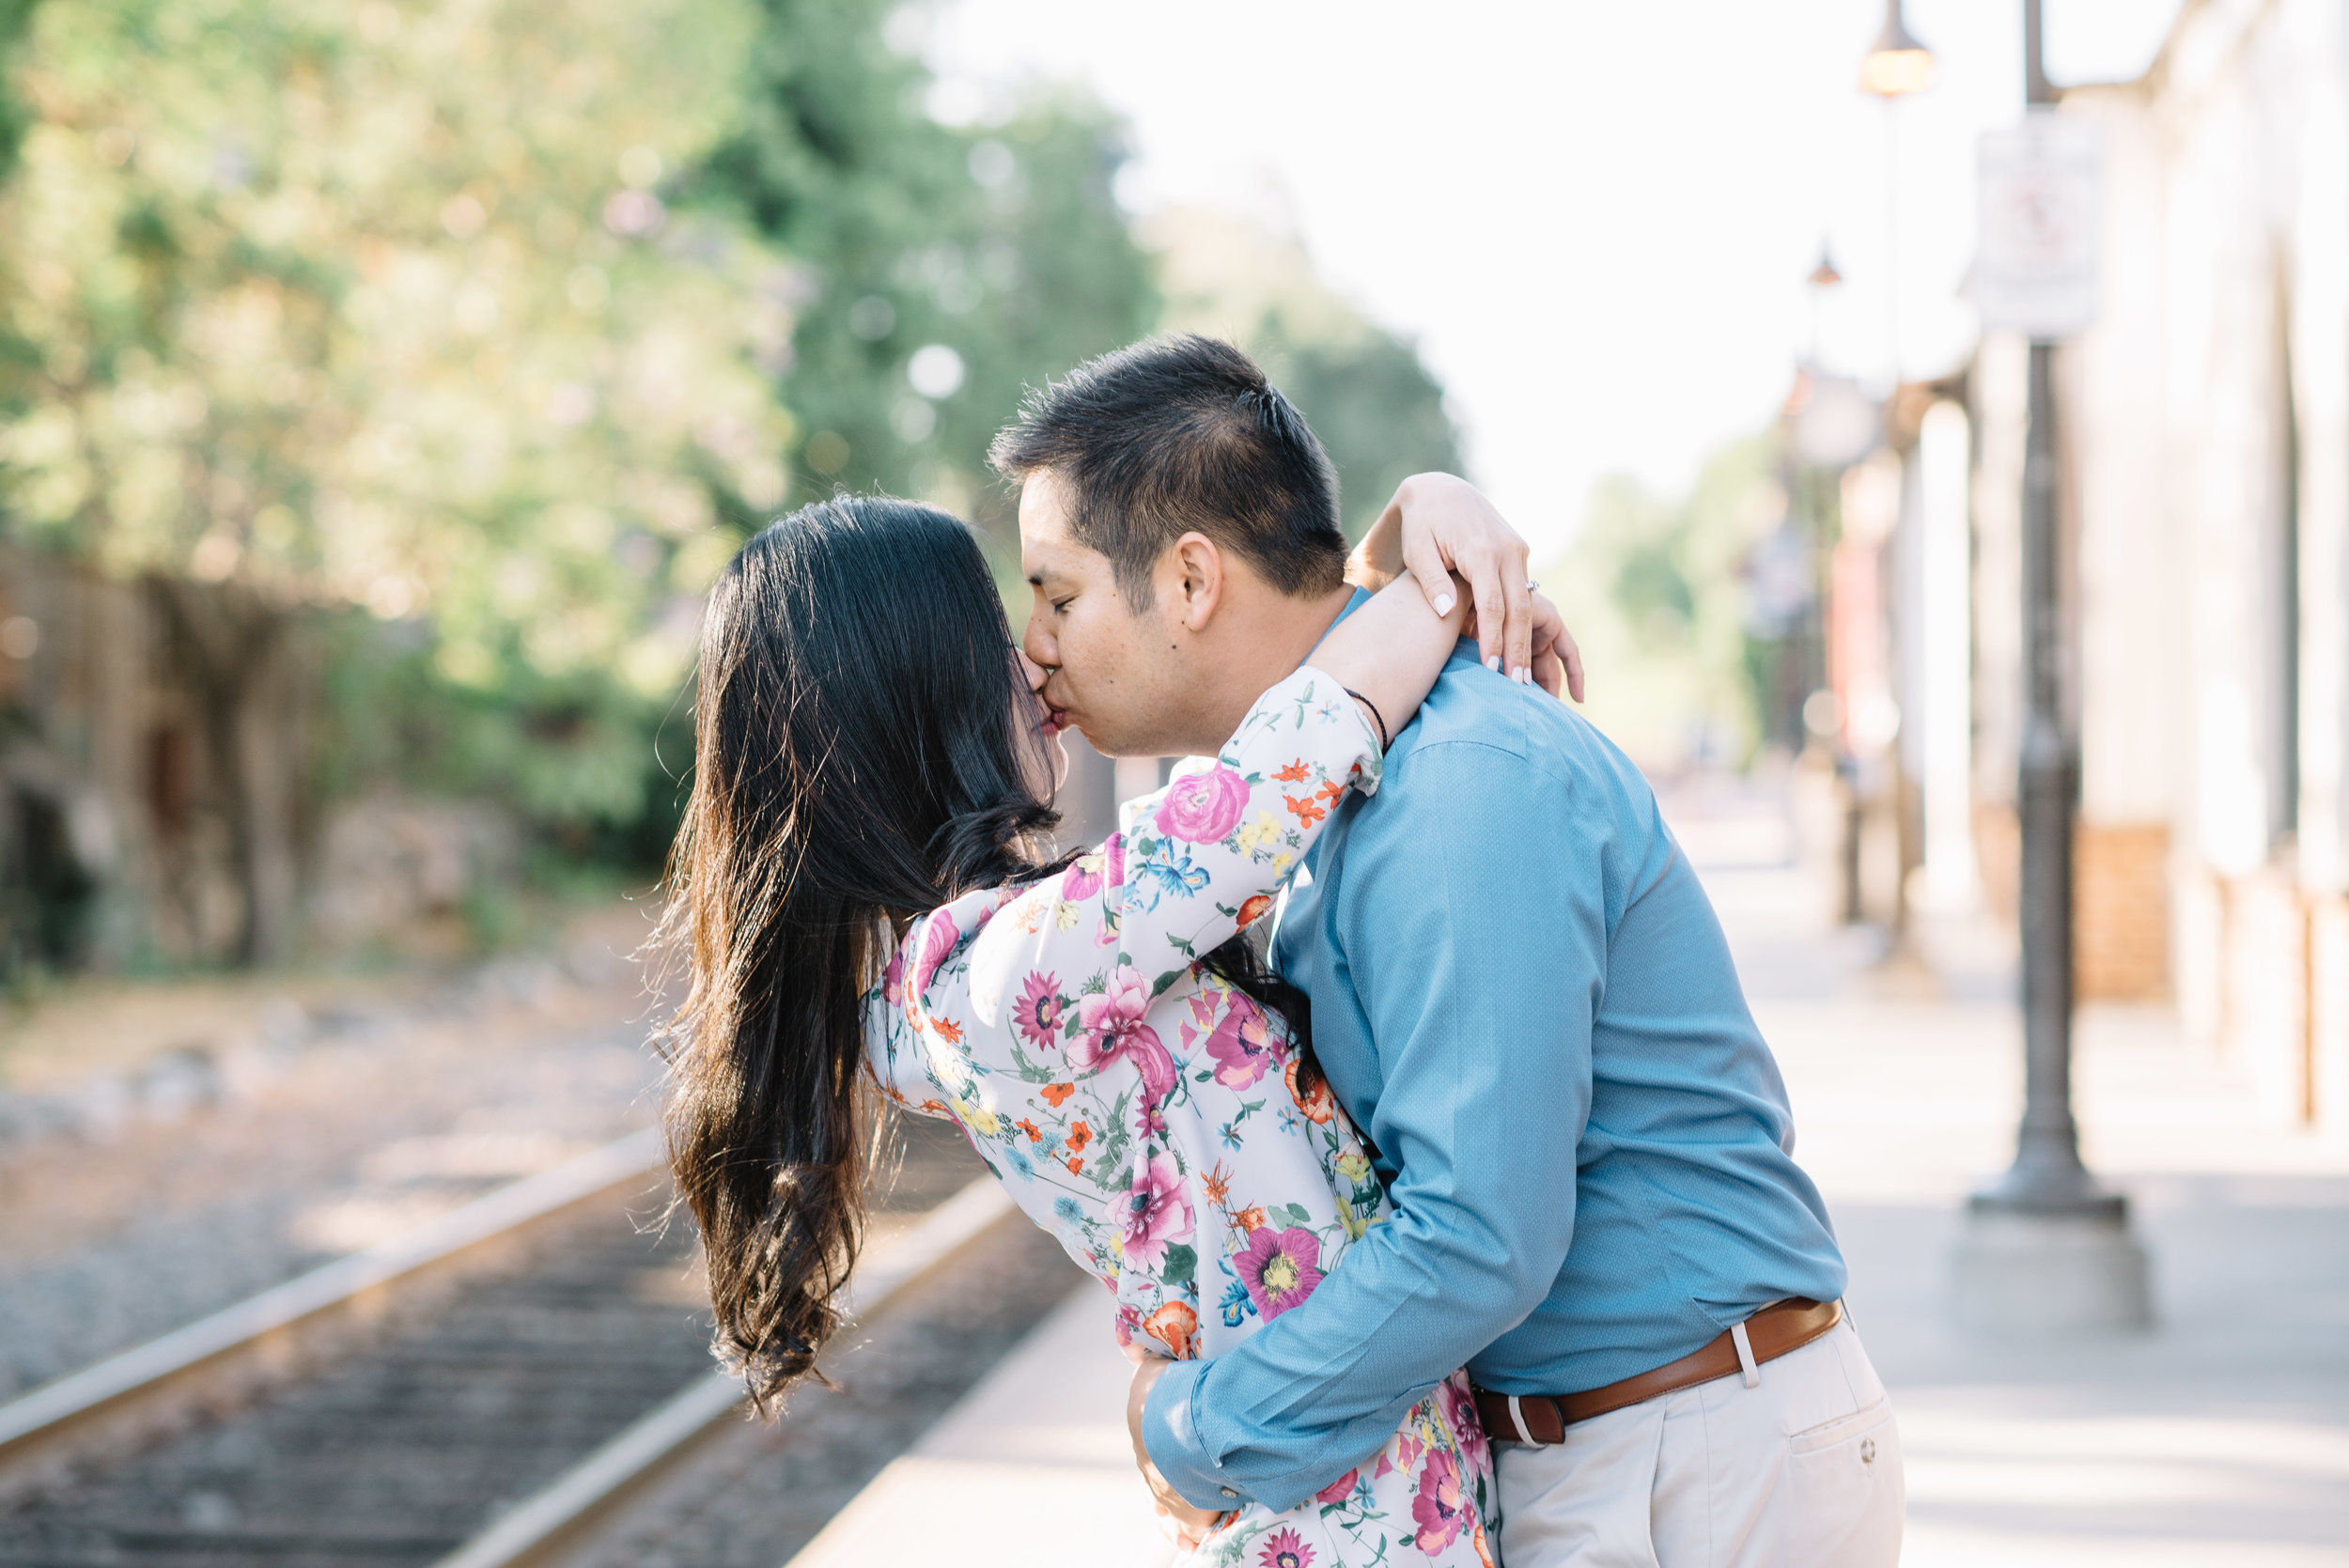 jennifer-jayn-photography-san-juan-capistrano-engagement-session-19.jpg